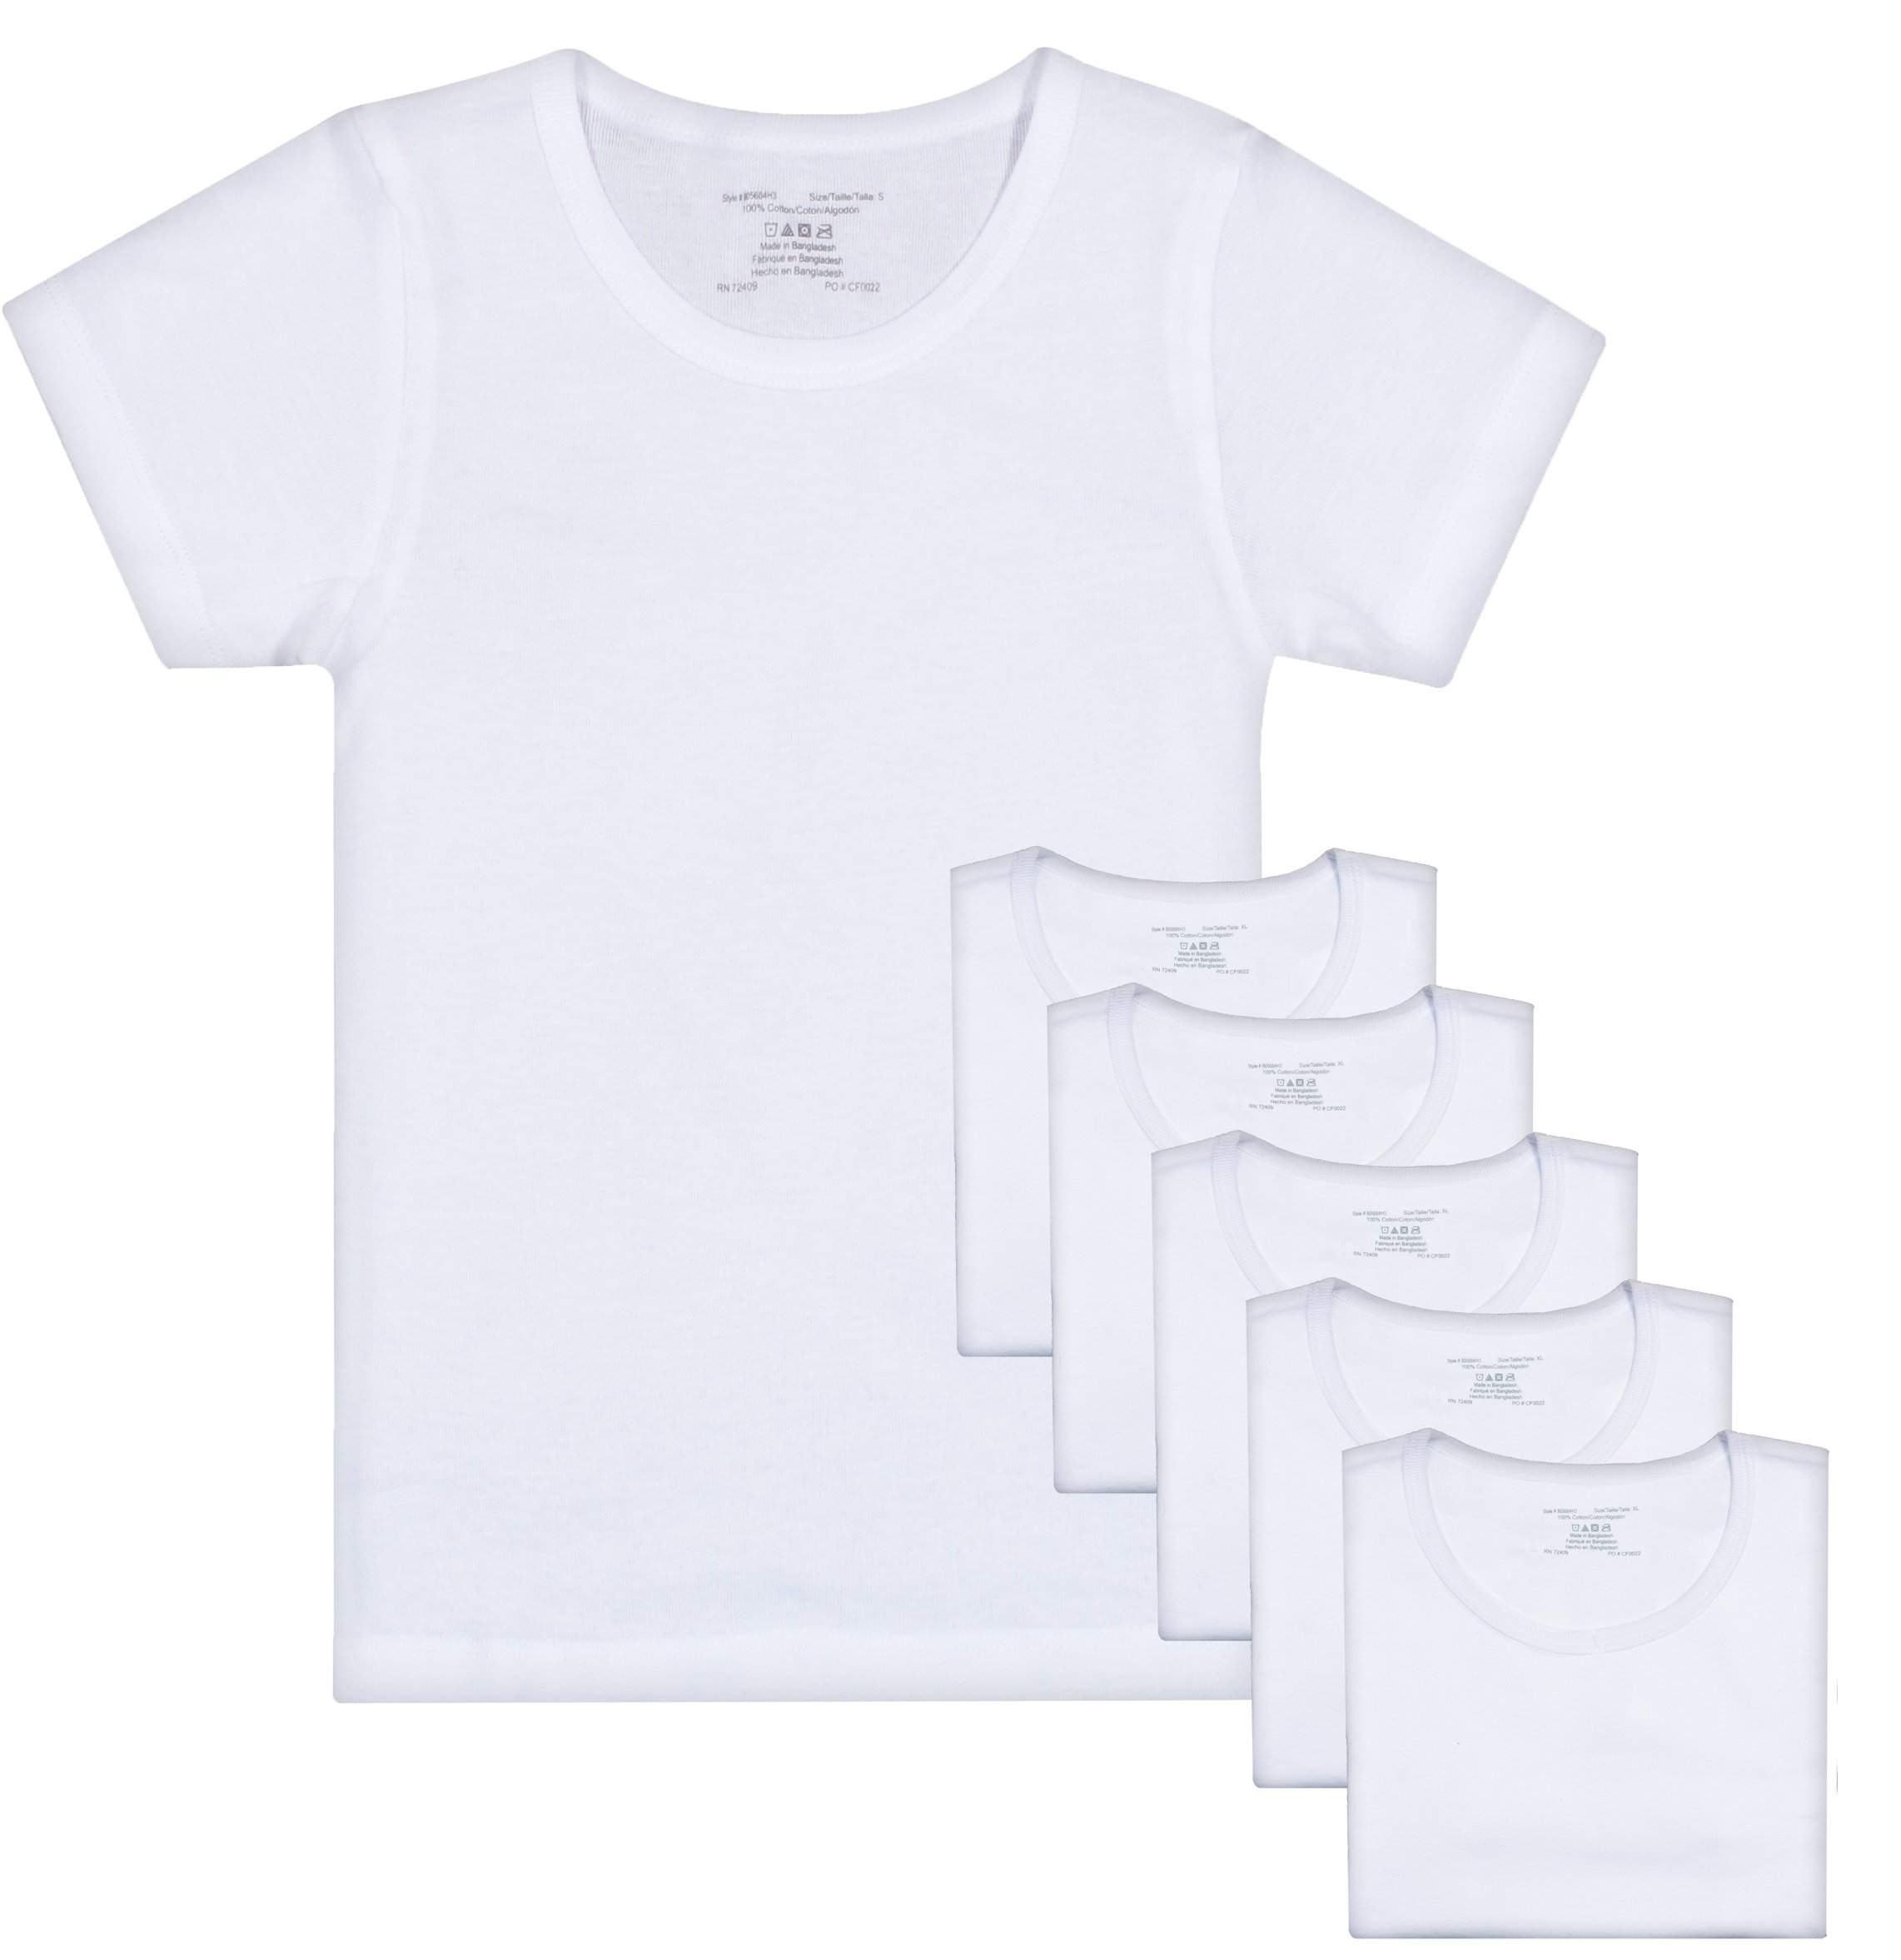 Rene Rofe Girl Crewneck Undershirt (6 Pack), White, Large/10-12'